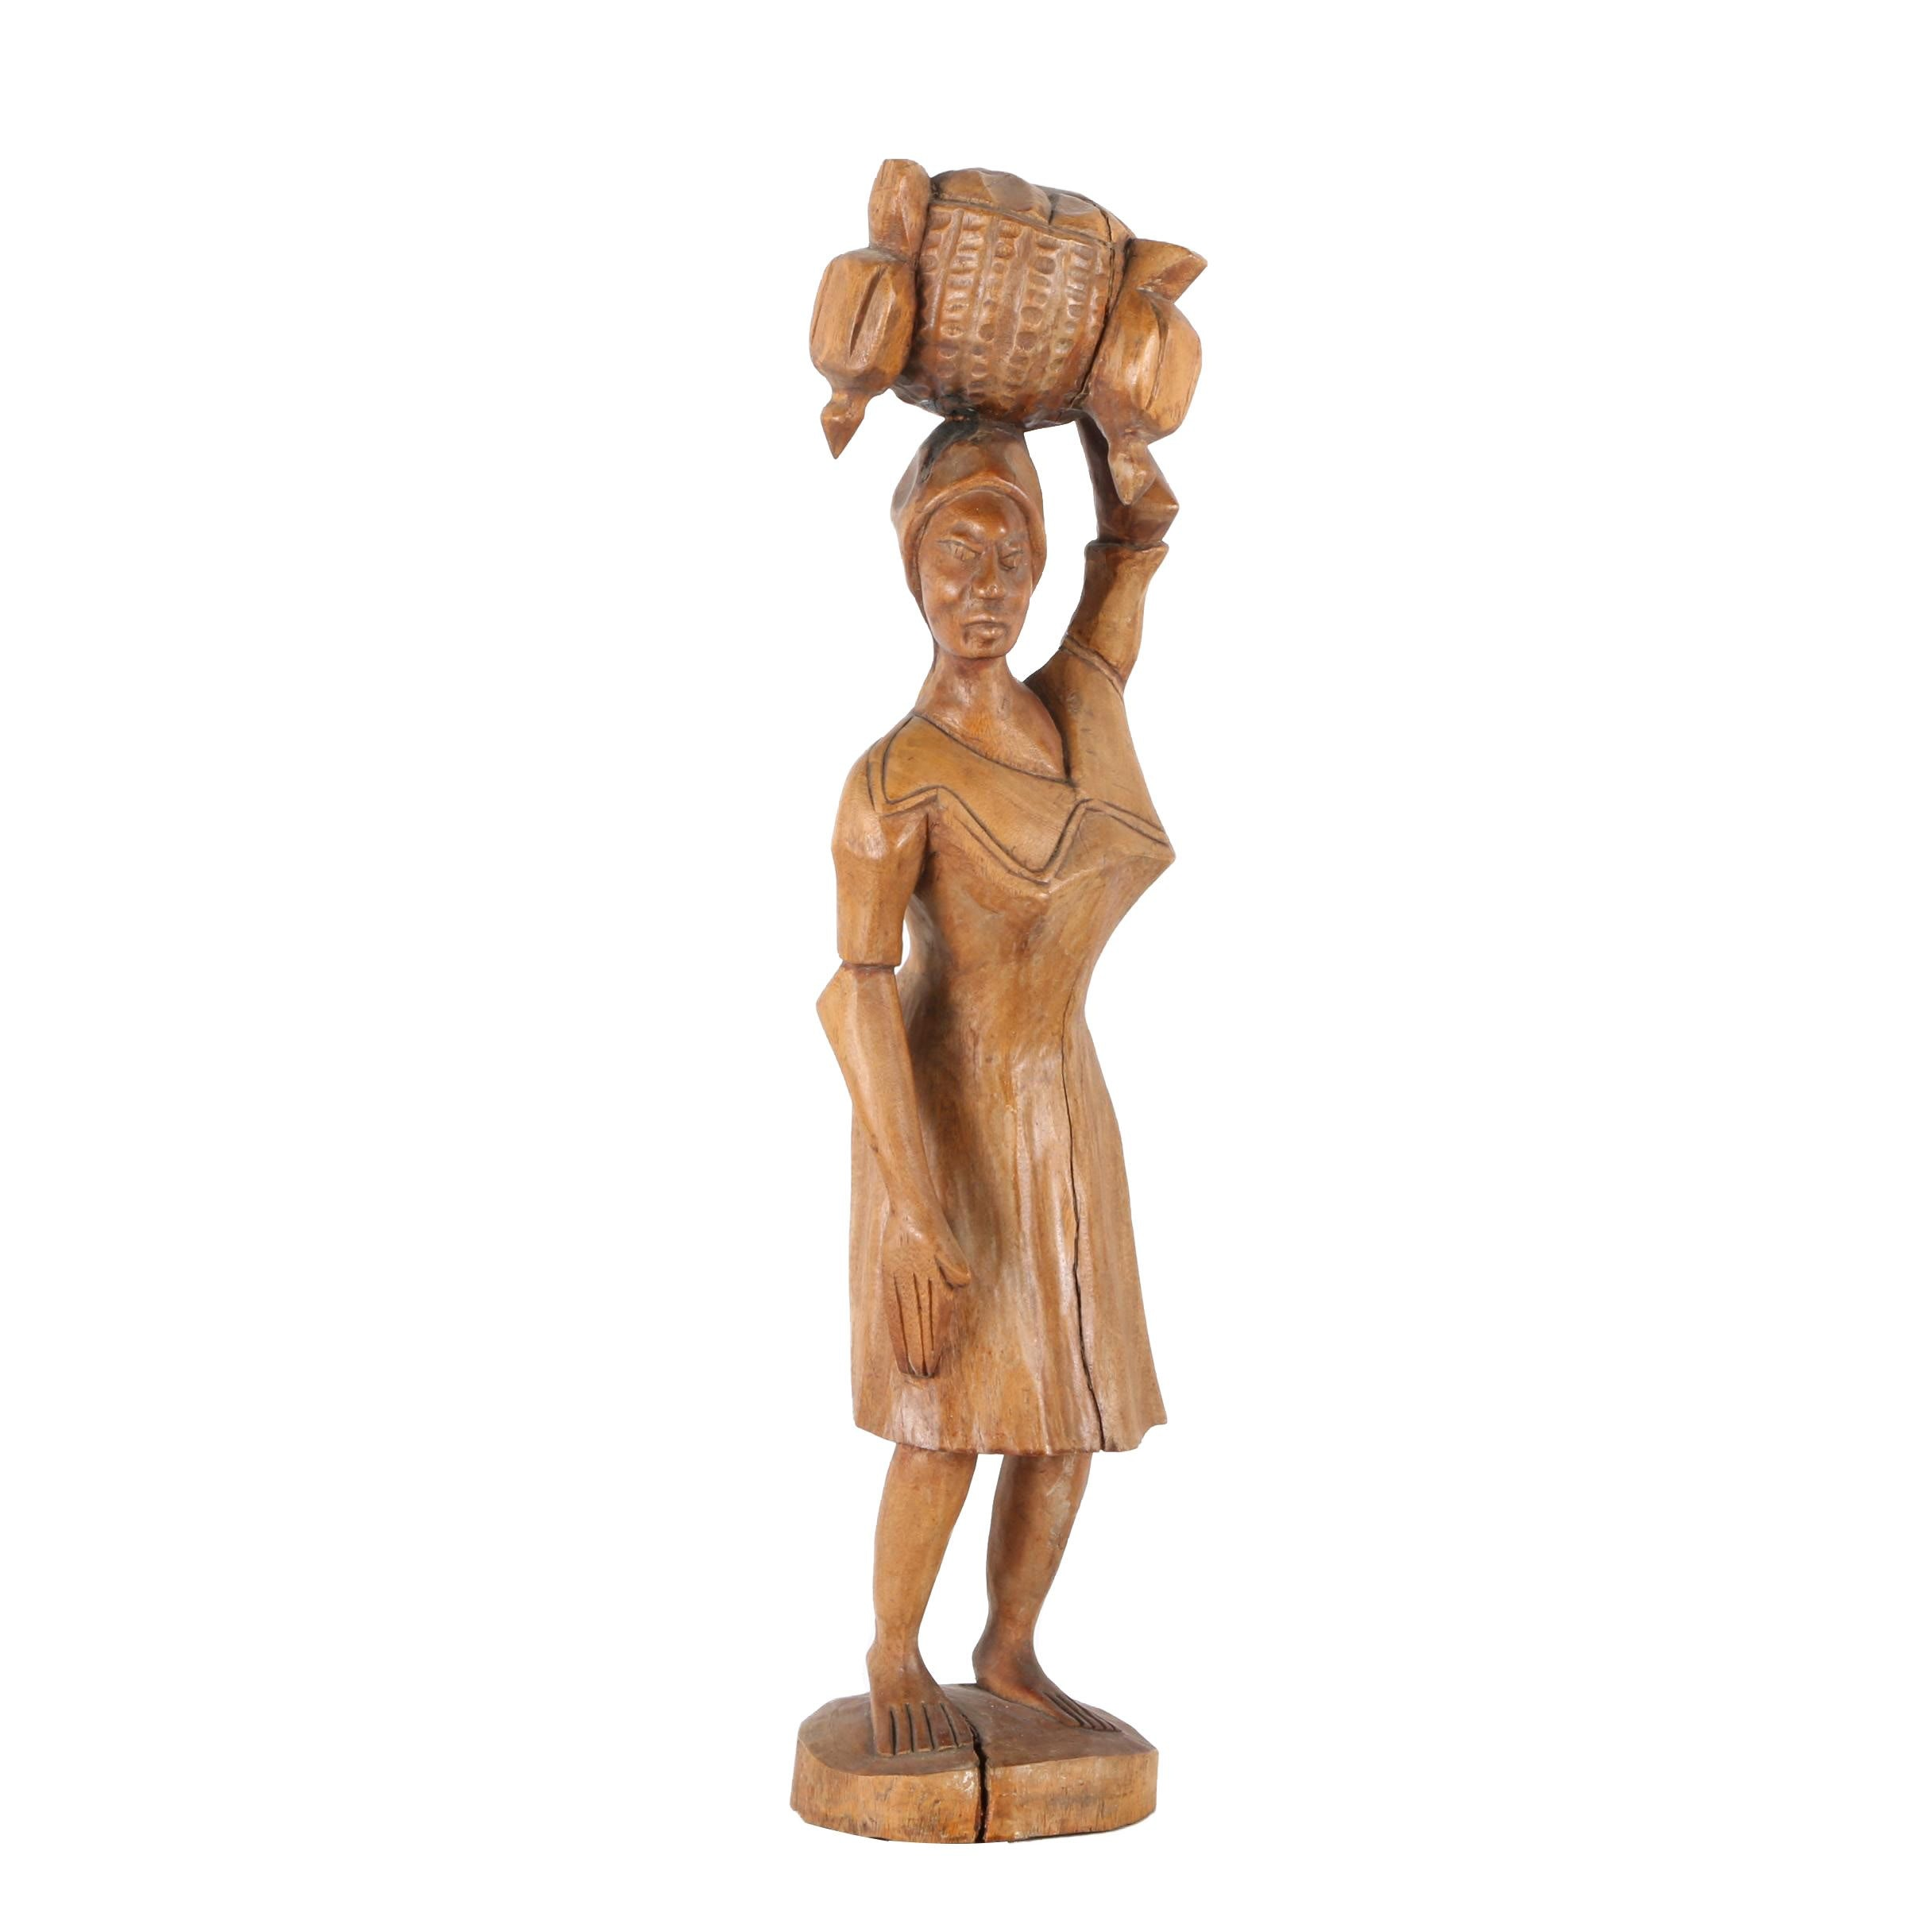 Carved Wooden Sculpture of Woman